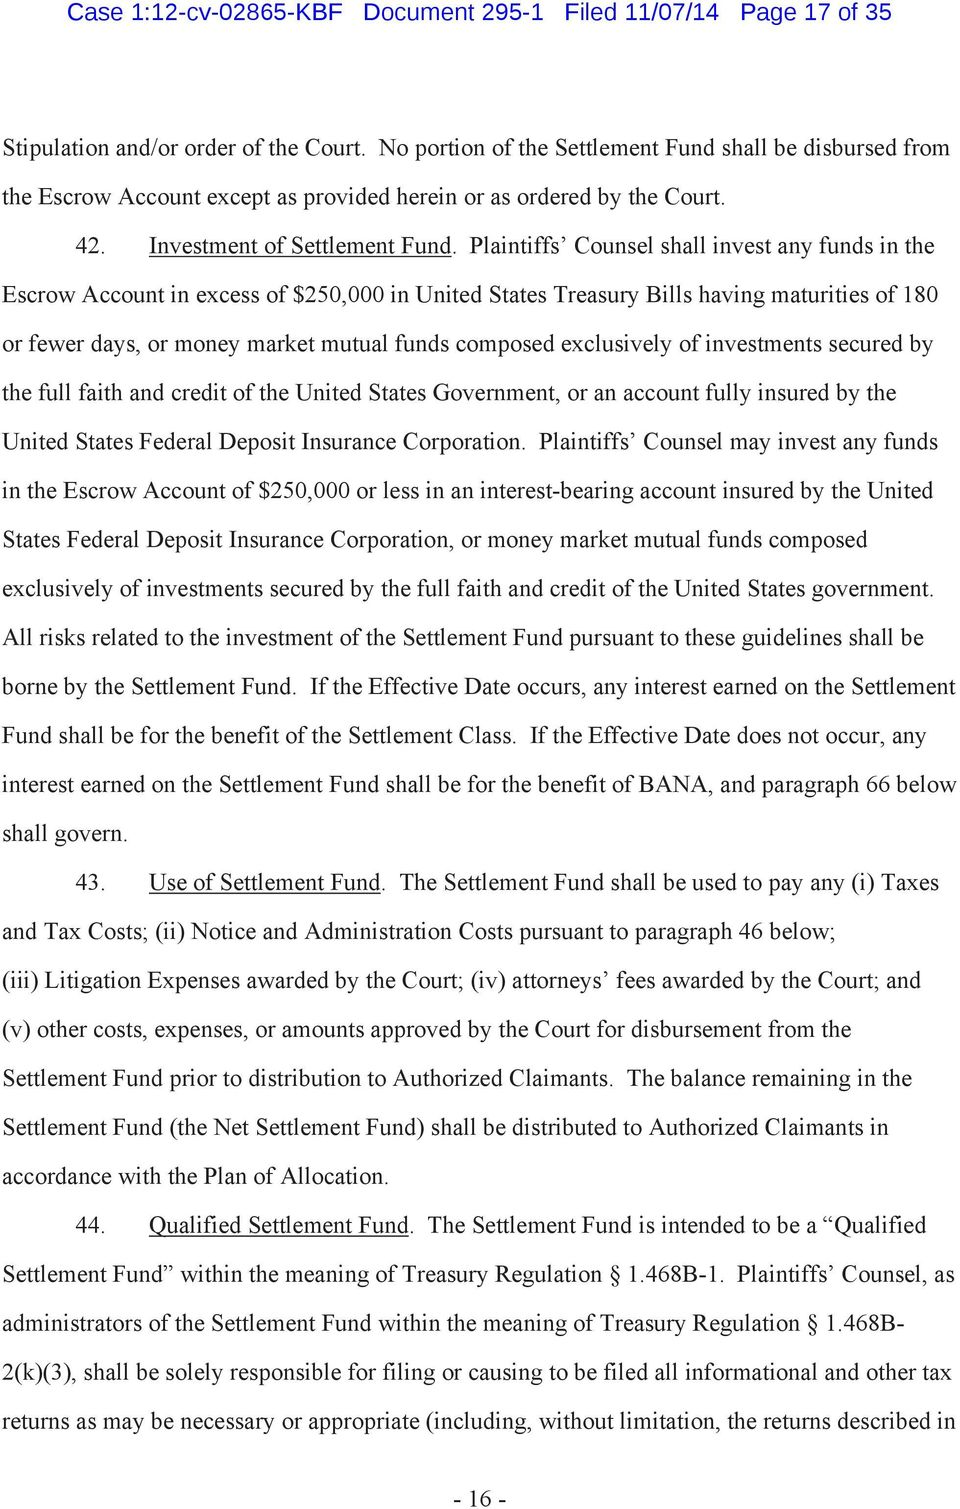 Plaintiffs Counsel shall invest any funds in the Escrow Account in excess of $250,000 in United States Treasury Bills having maturities of 180 or fewer days, or money market mutual funds composed